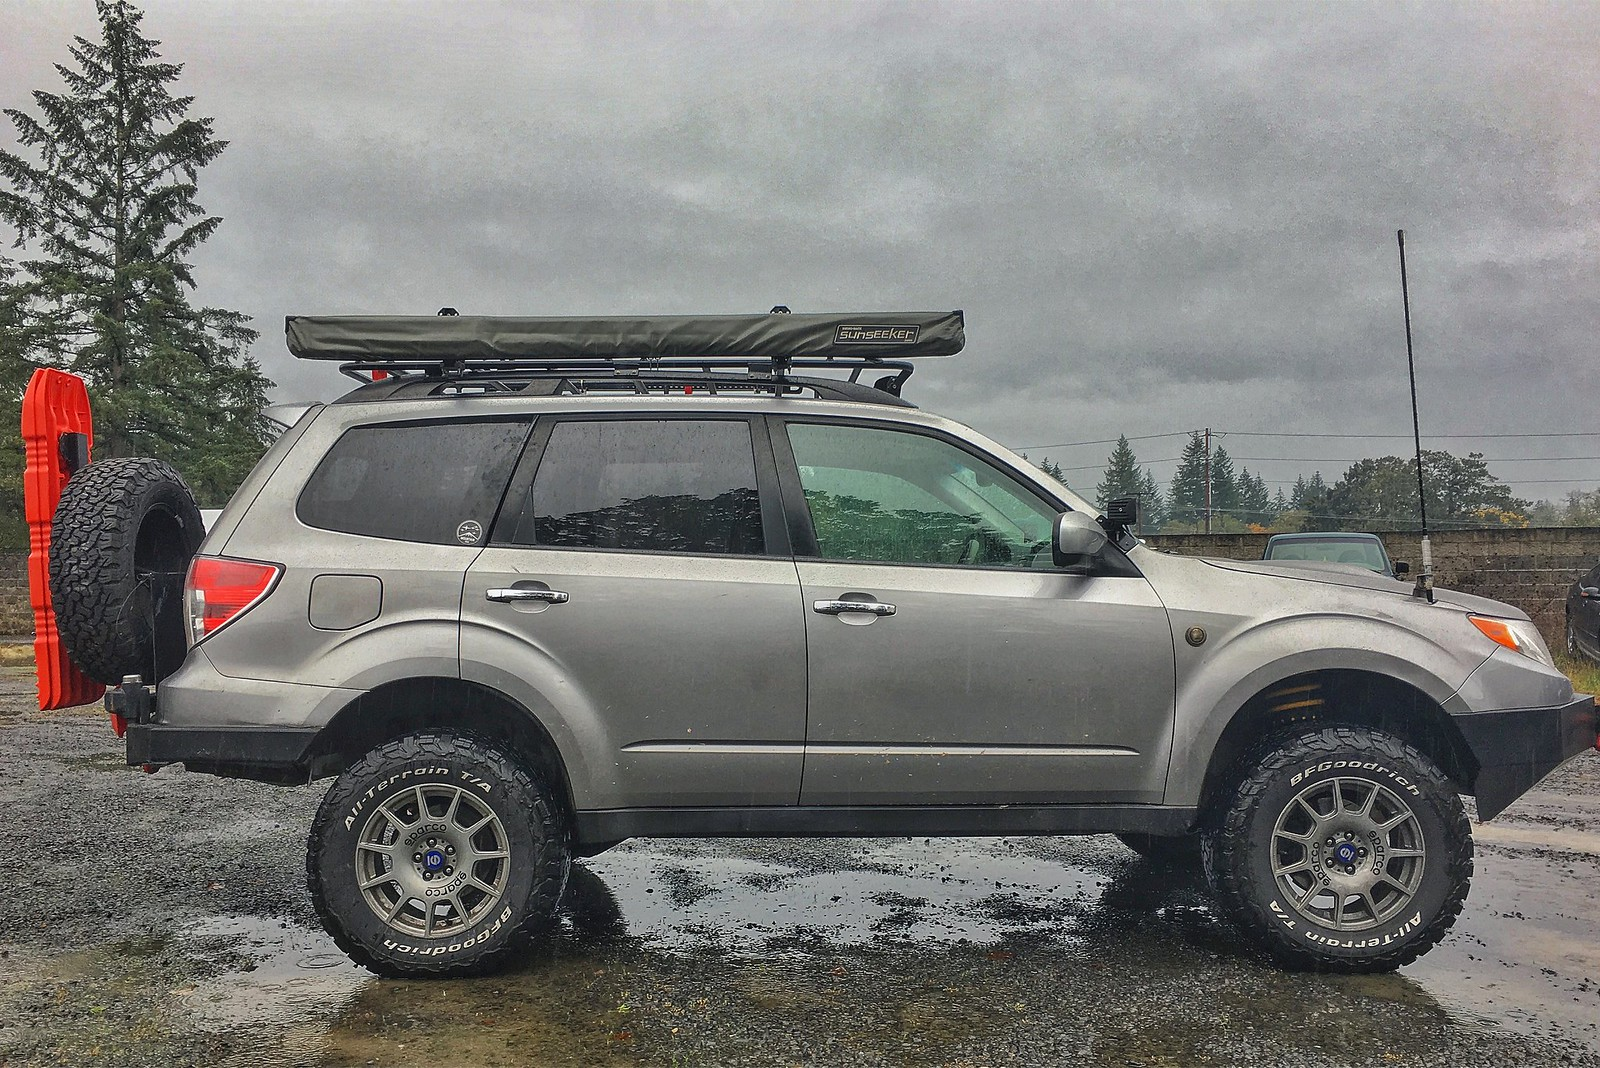 3909 3913 Overland Build Thread Subaru Forester Owners Forum